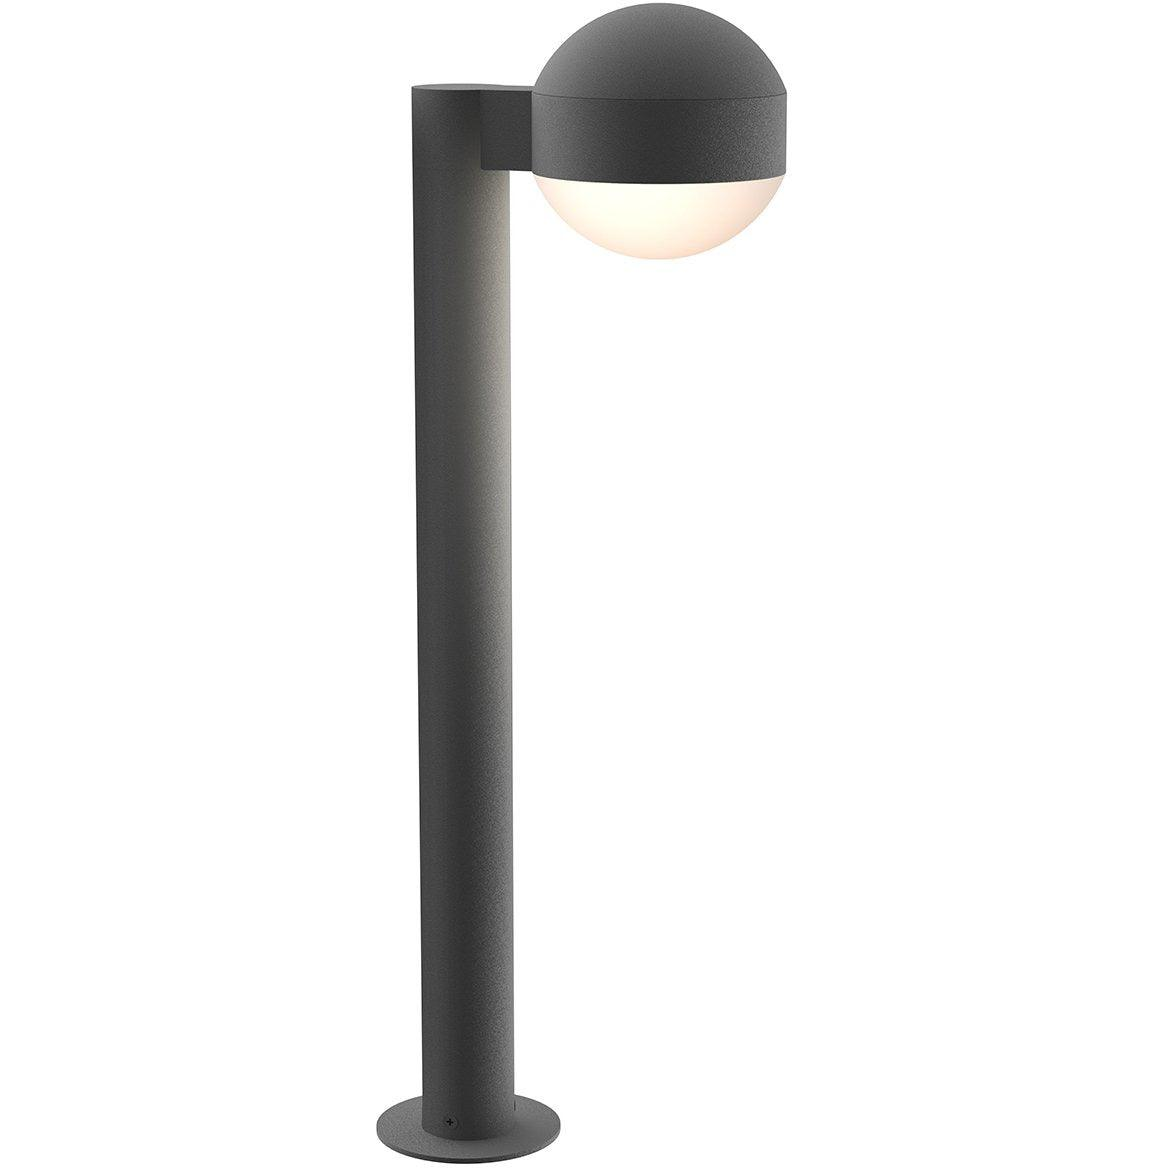 Sonneman - A Way of Light - 7304.DC.DL.74-WL - LED Bollard - REALS - Textured Gray